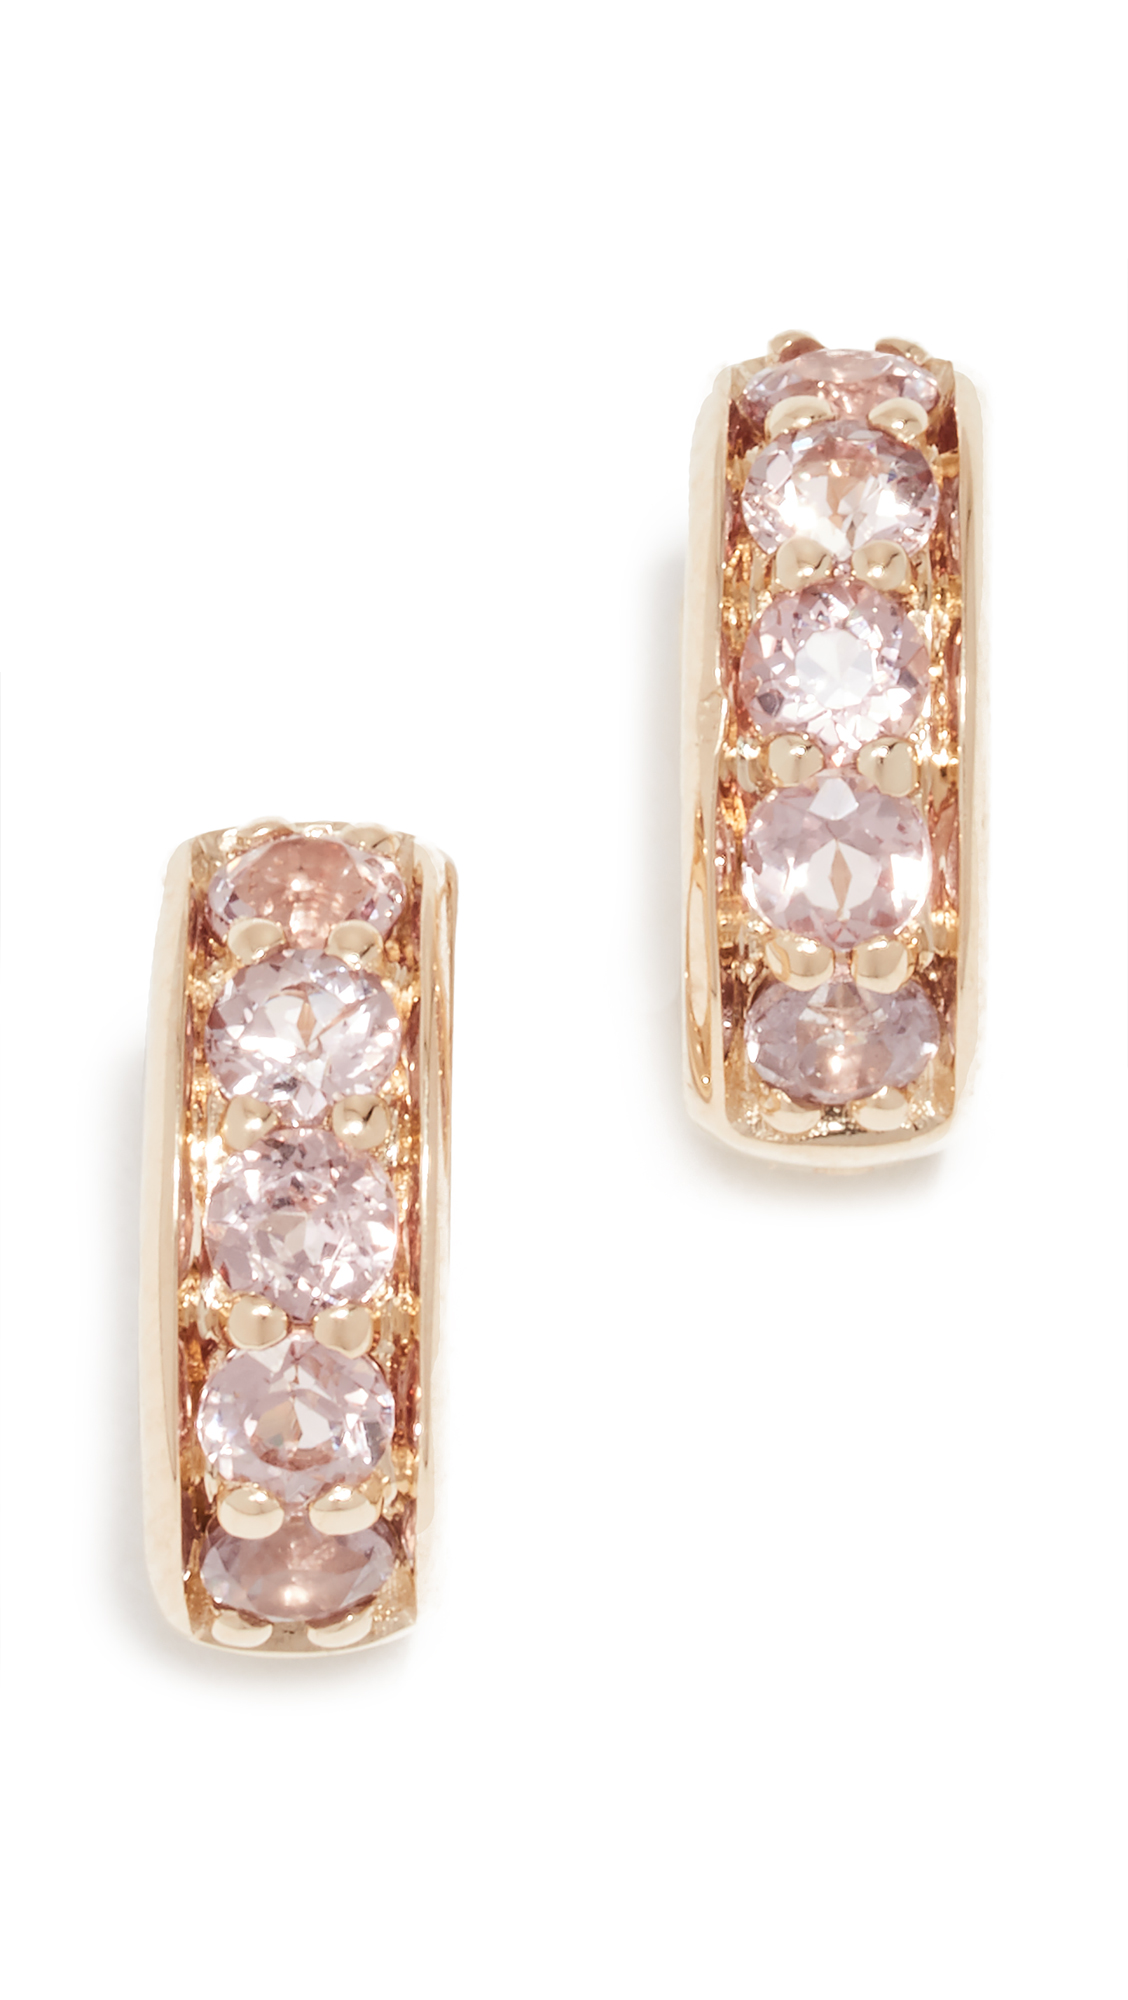 JANE TAYLOR 14K Garnet Huggie Earrings in Pink